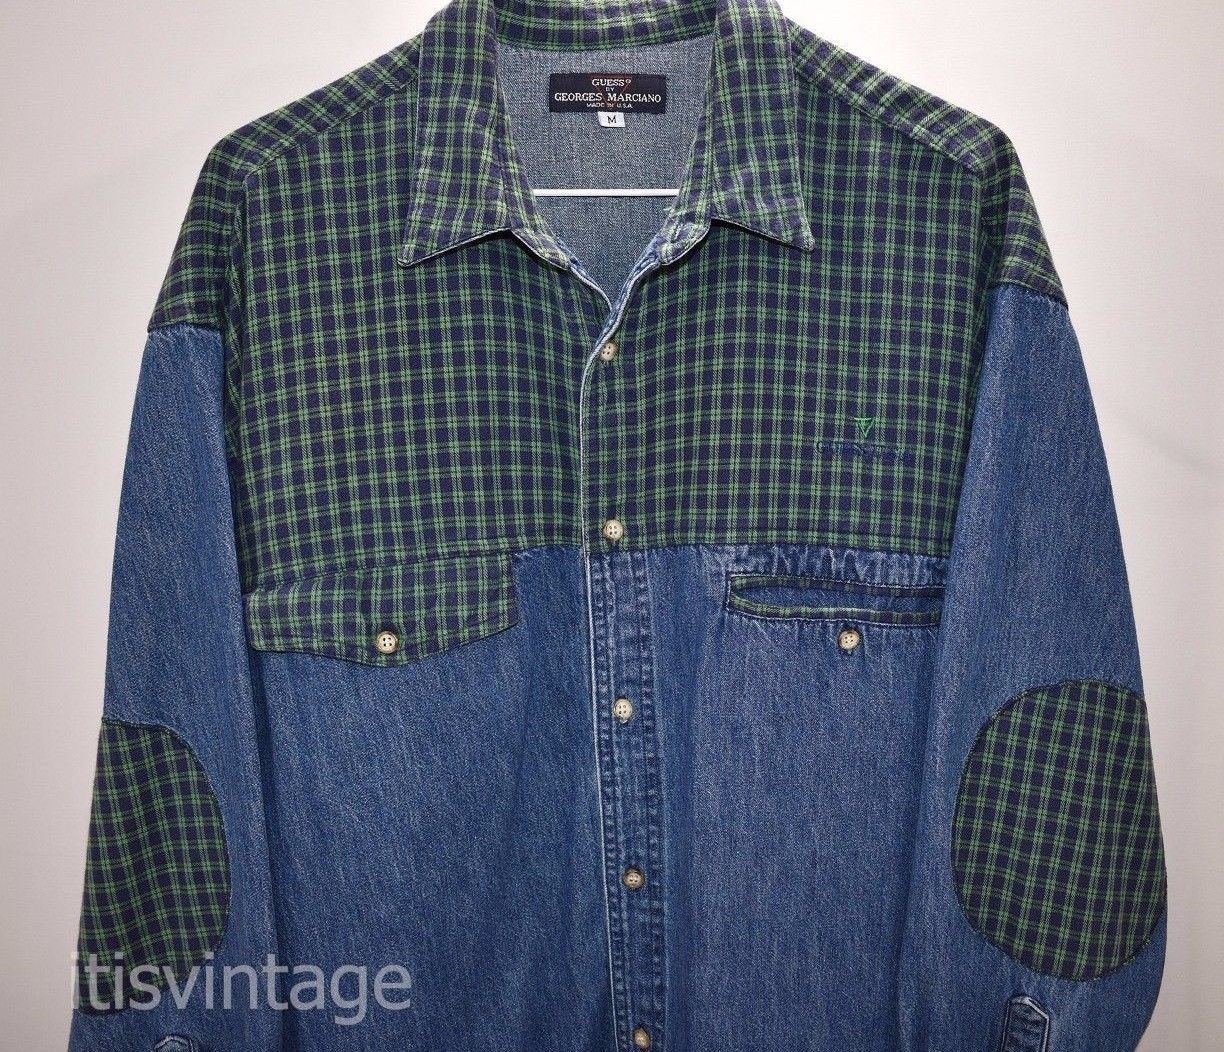 Flannel shirt vintage  Vintage us Guess Marciano Made USA Denim u Flannel Button Front